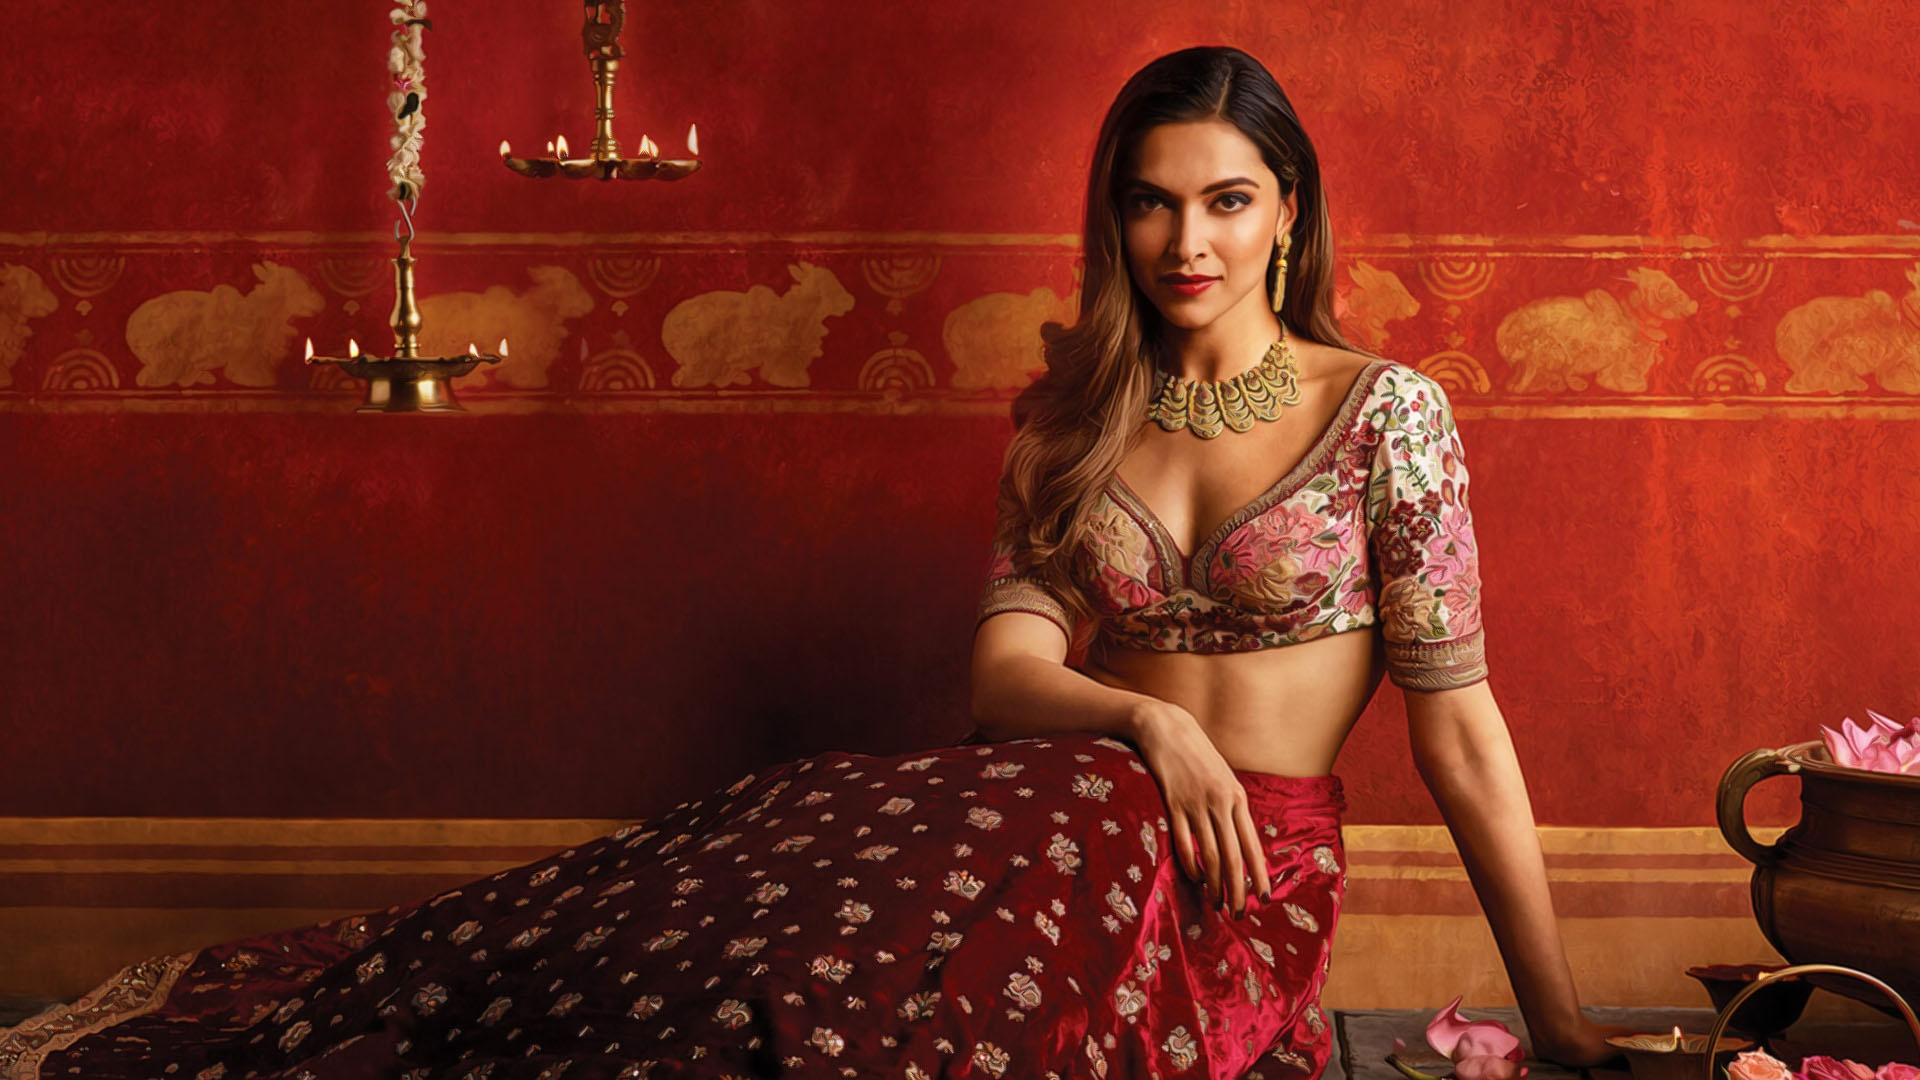 Deepika Padukone Tanishq wallpaper